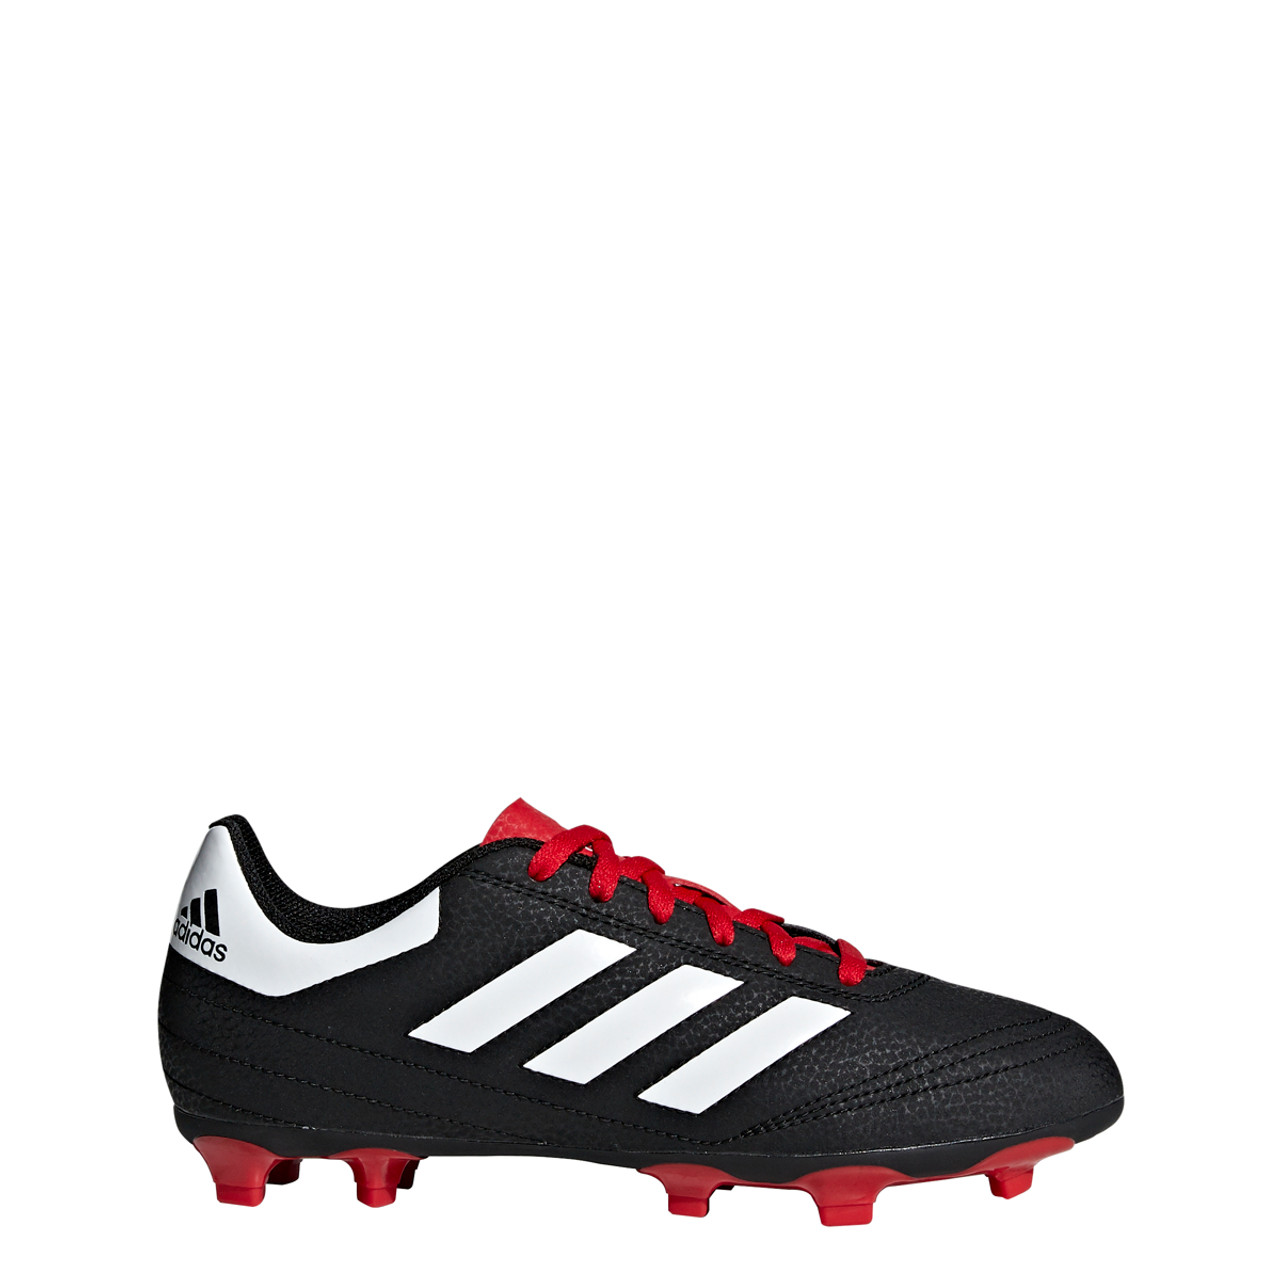 a0691f41371 Boy s Adidas Goletto VI FG Jr Soccer Cleat - Sieverts Sporting Goods